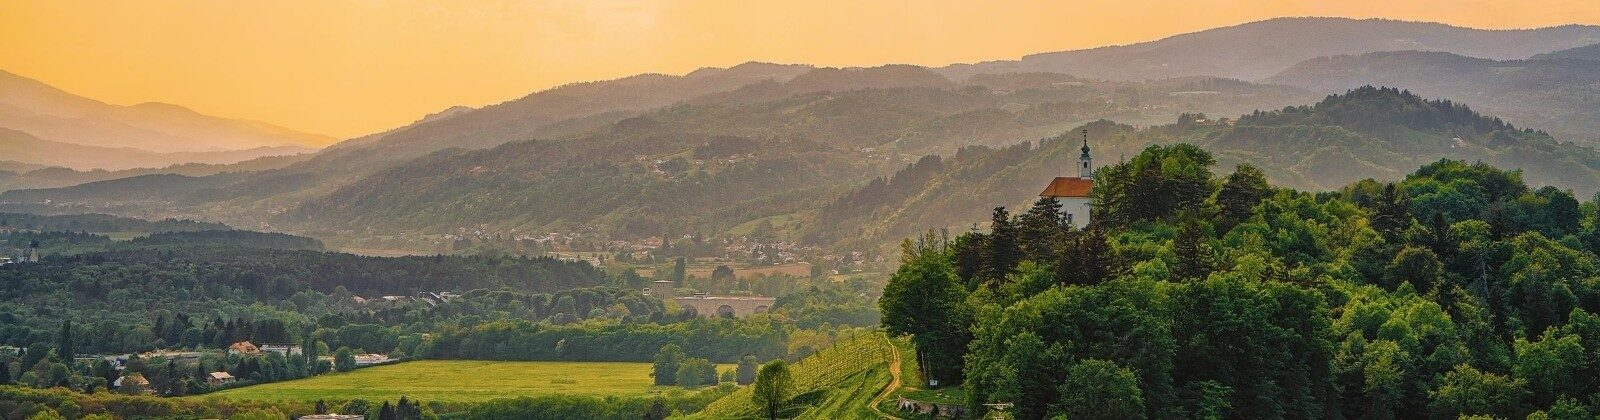 countryside in slovenia europe